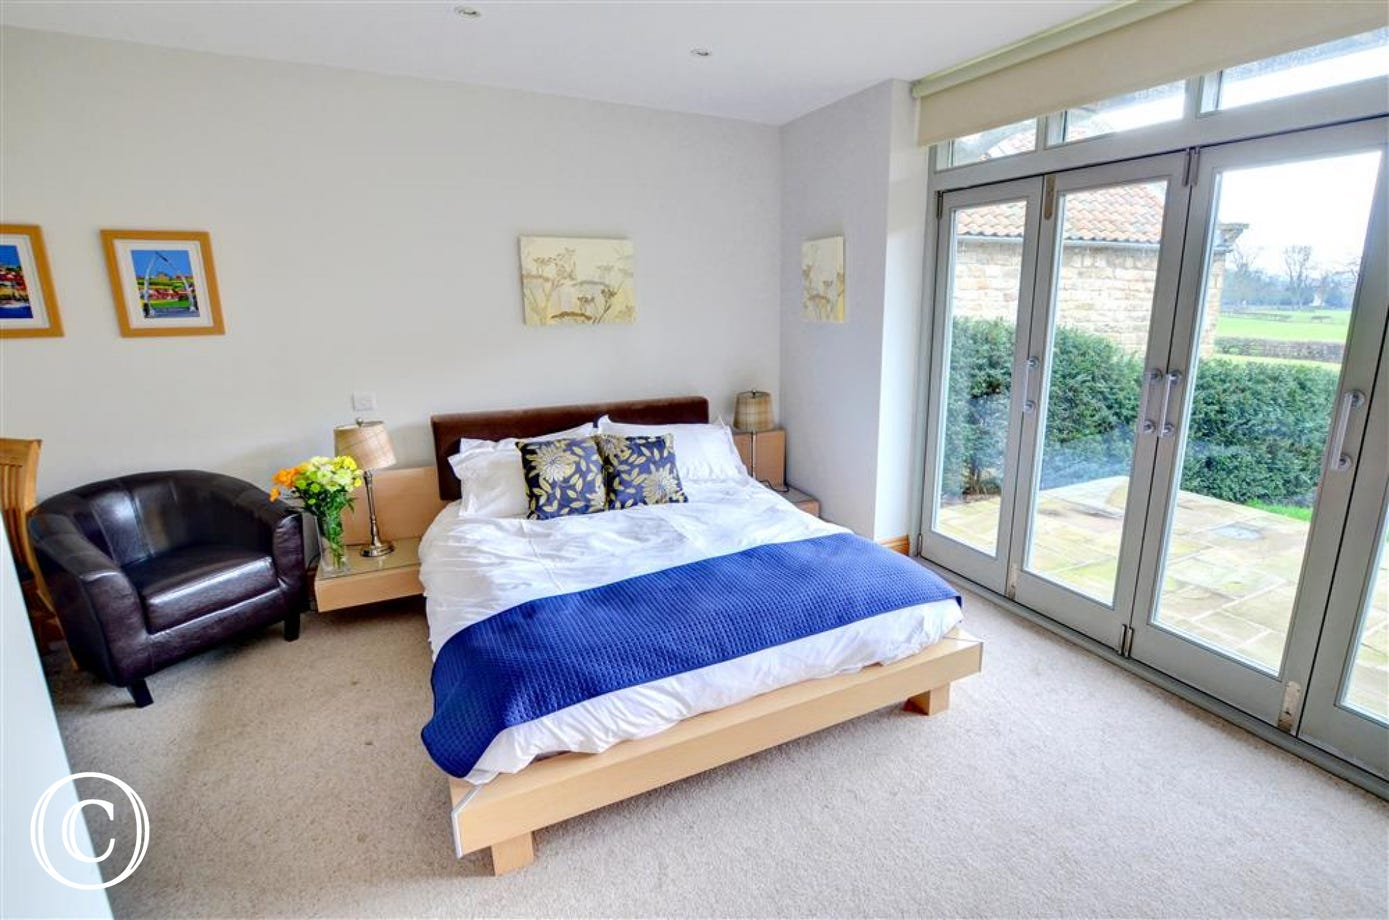 Bedroom is on the ground floor with some lovely views and doors leading out to the patio.